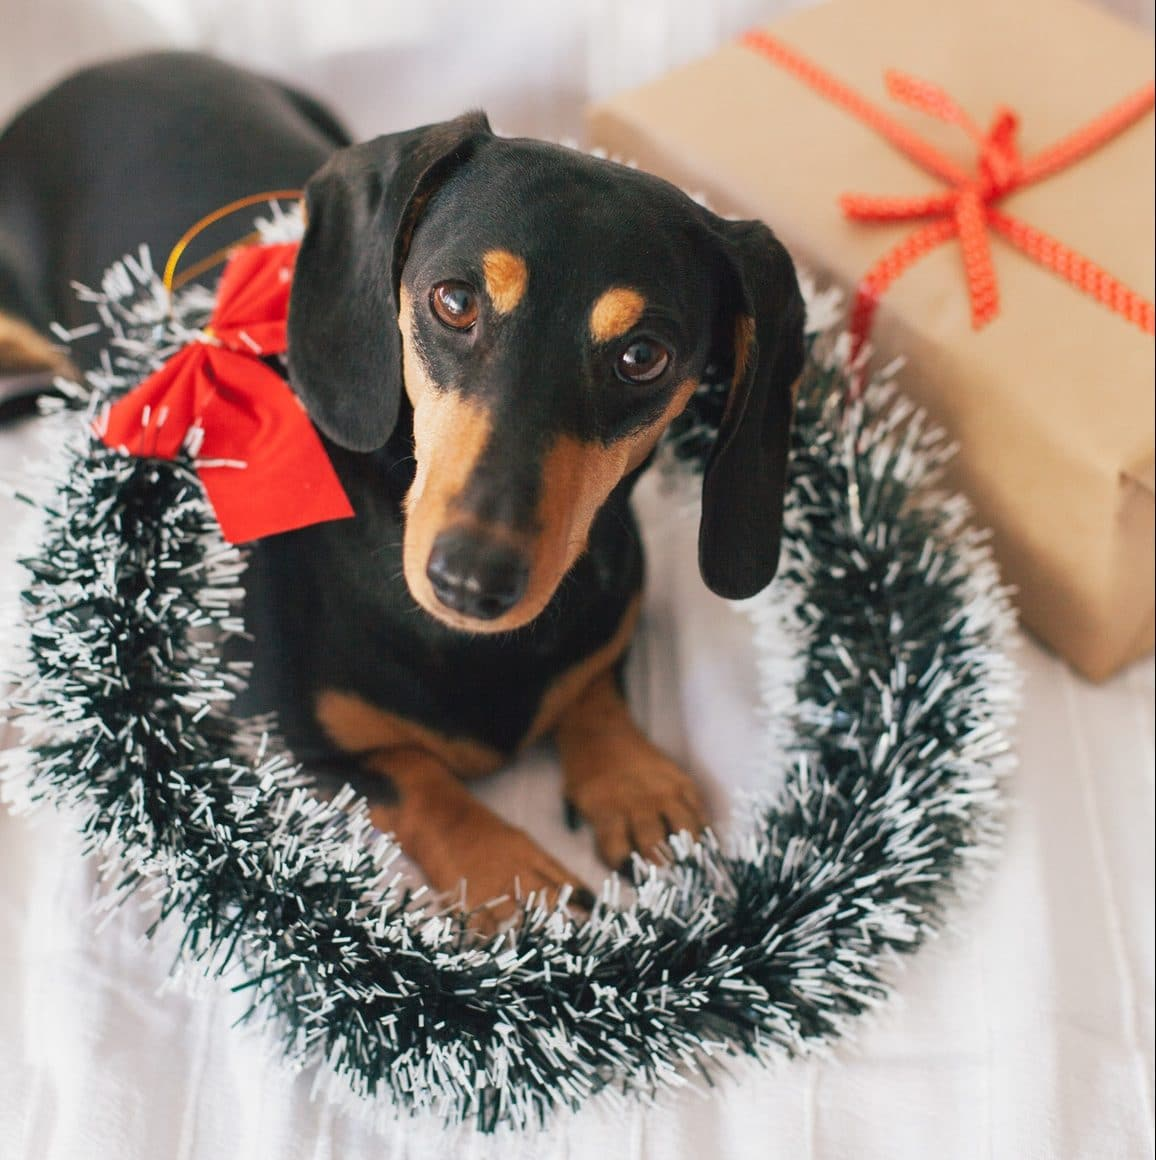 A dachshund puppy celebrating their first Christmas